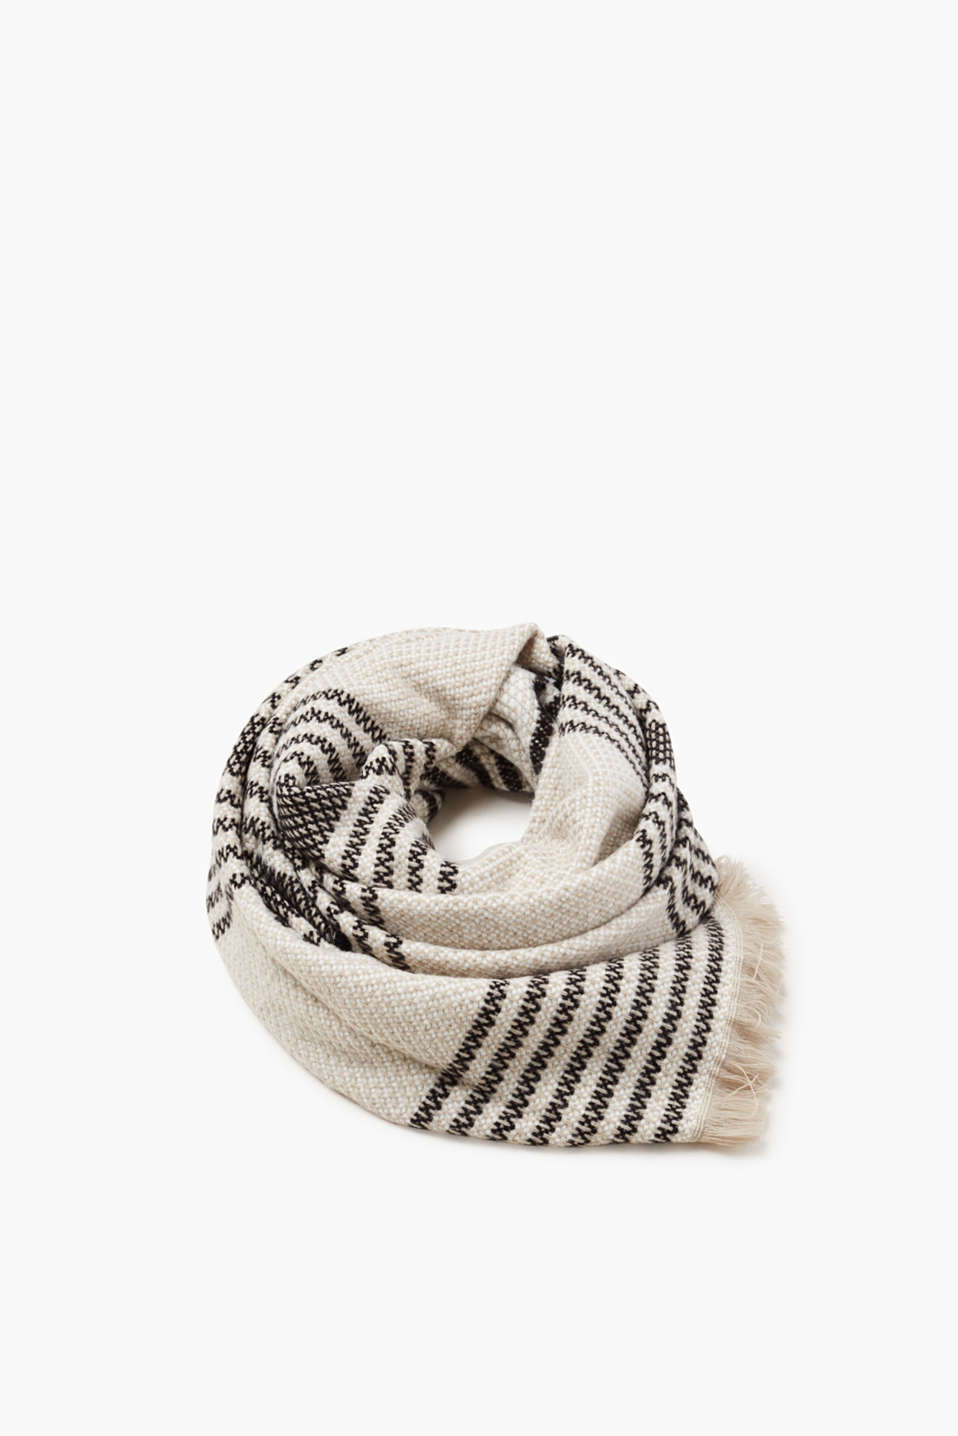 In a two-tone textured knit with stripes, this XL scarf is sure to turn heads.